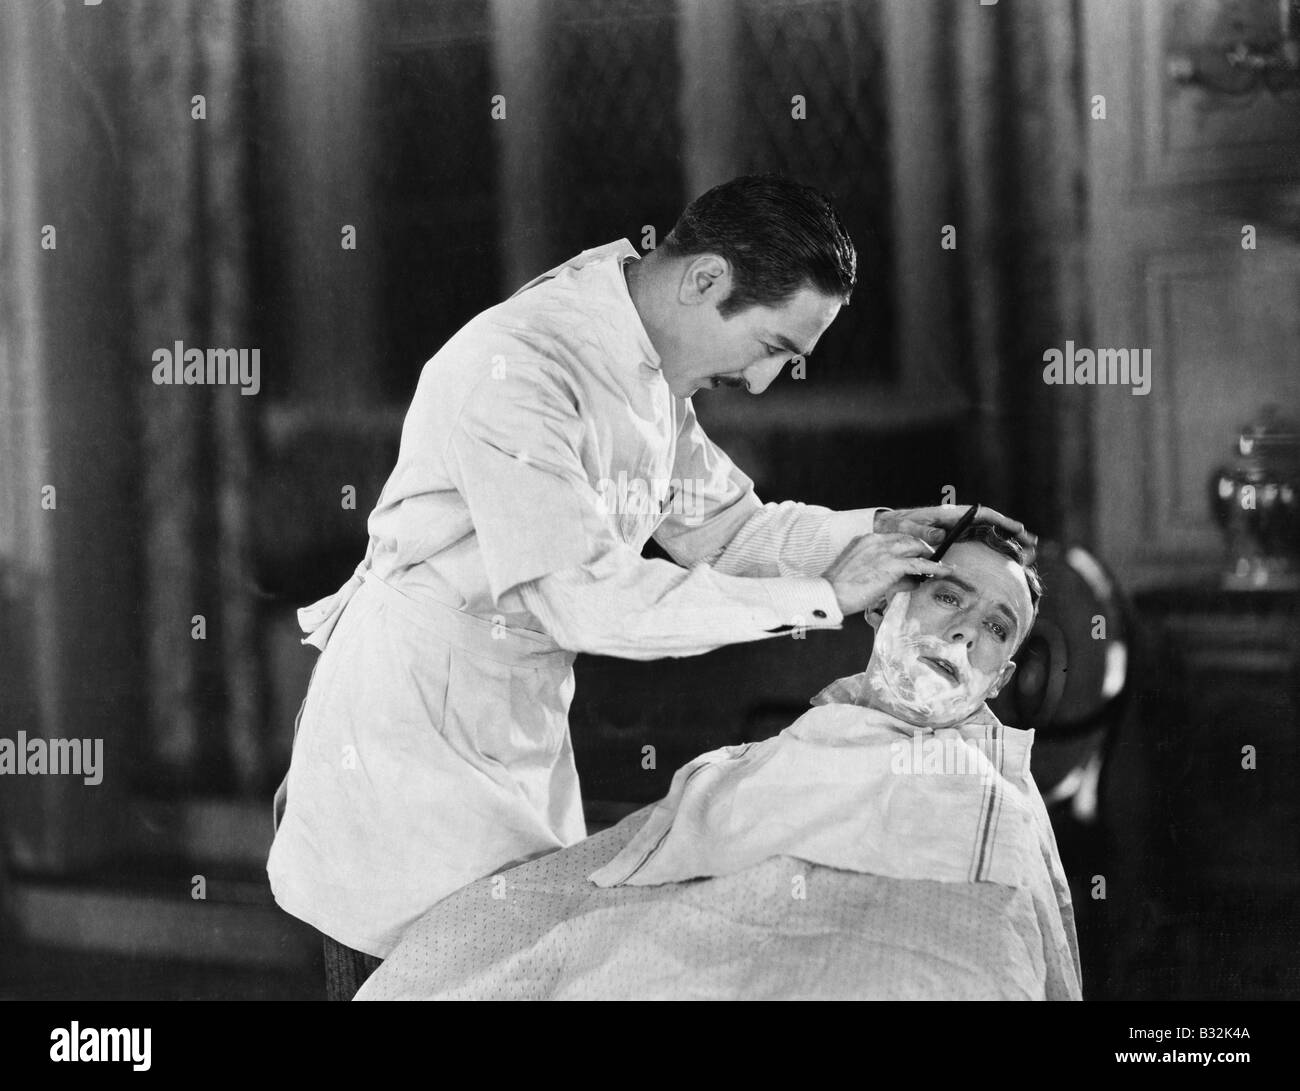 An expert at close shaves - Stock Image